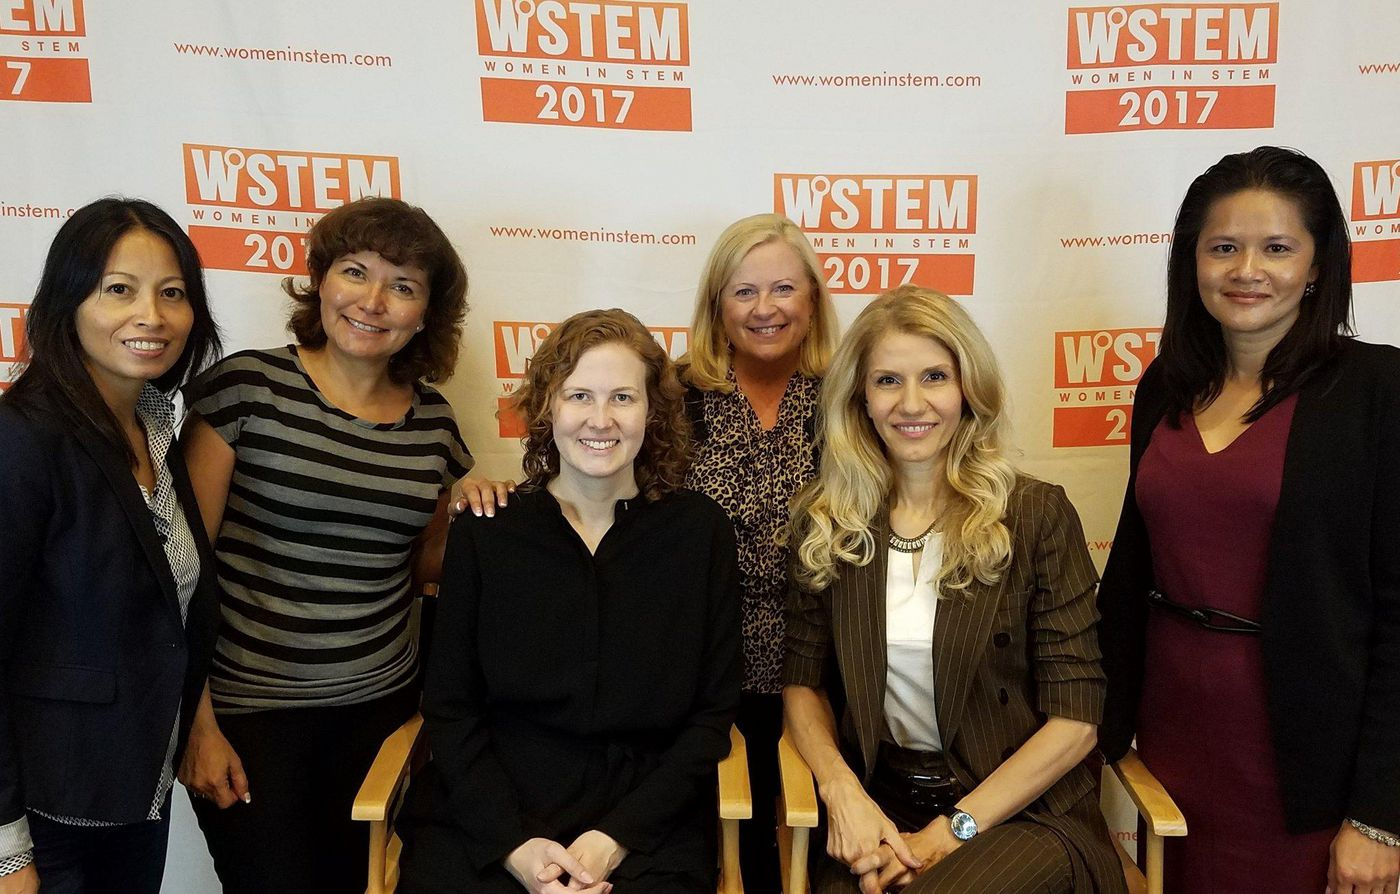 Global Women in STEM: When Idea Meets Execution